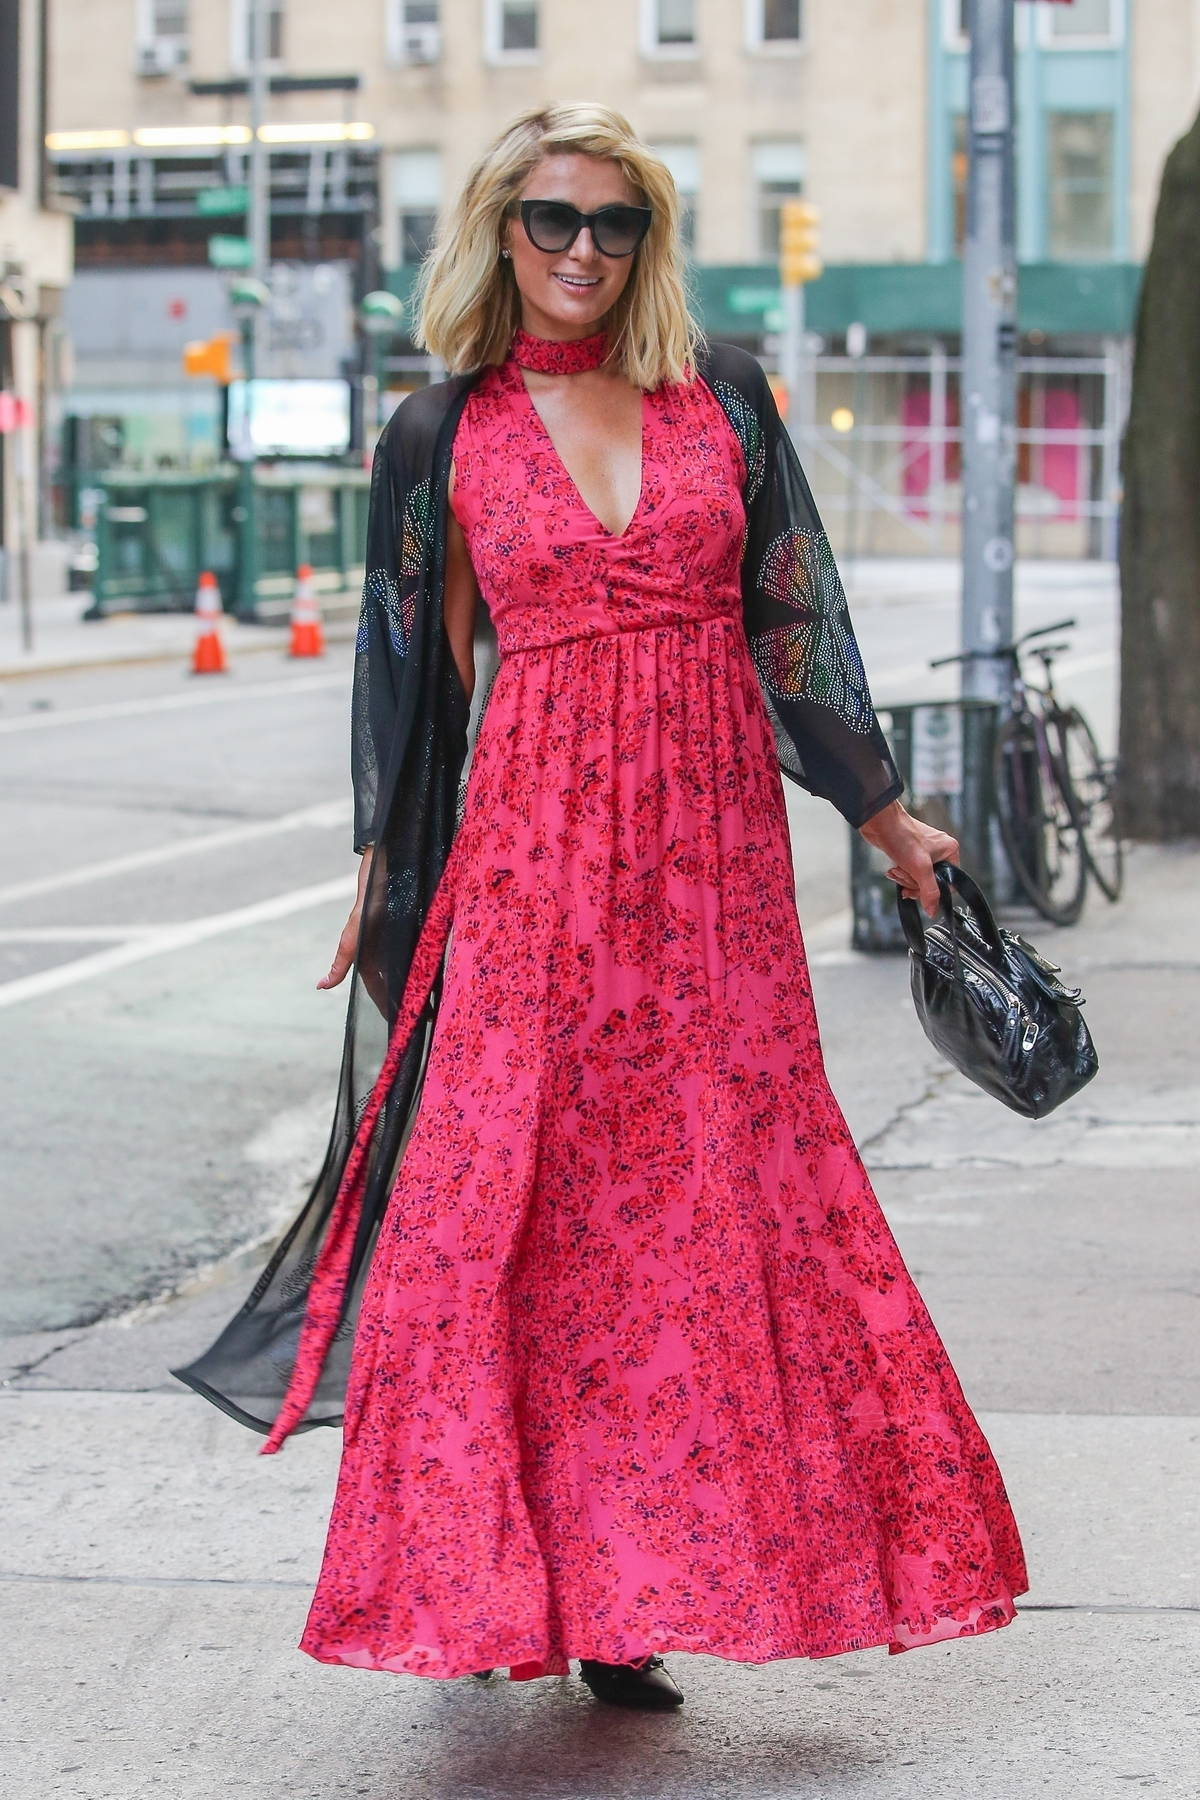 Paris Hilton looks glamorous in a floral print red dress as she strikes a few pose in New York City